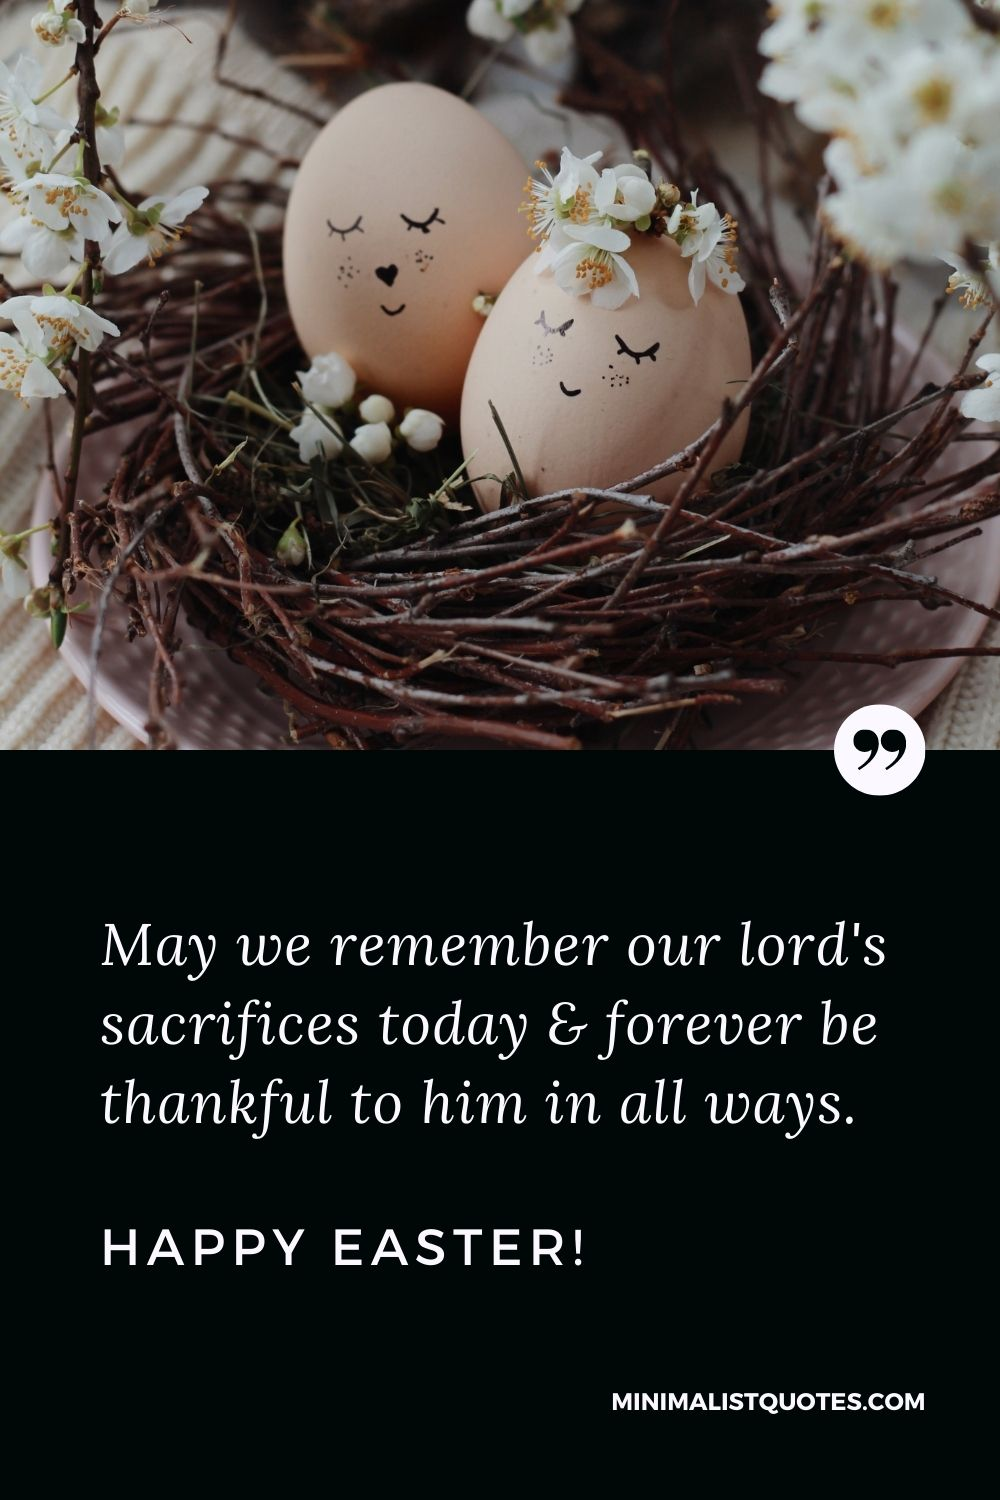 Easter Quote, Wish & Message With Image: May we remember our lord's sacrifices today & forever be thankful to him in all ways. Happy Easter!